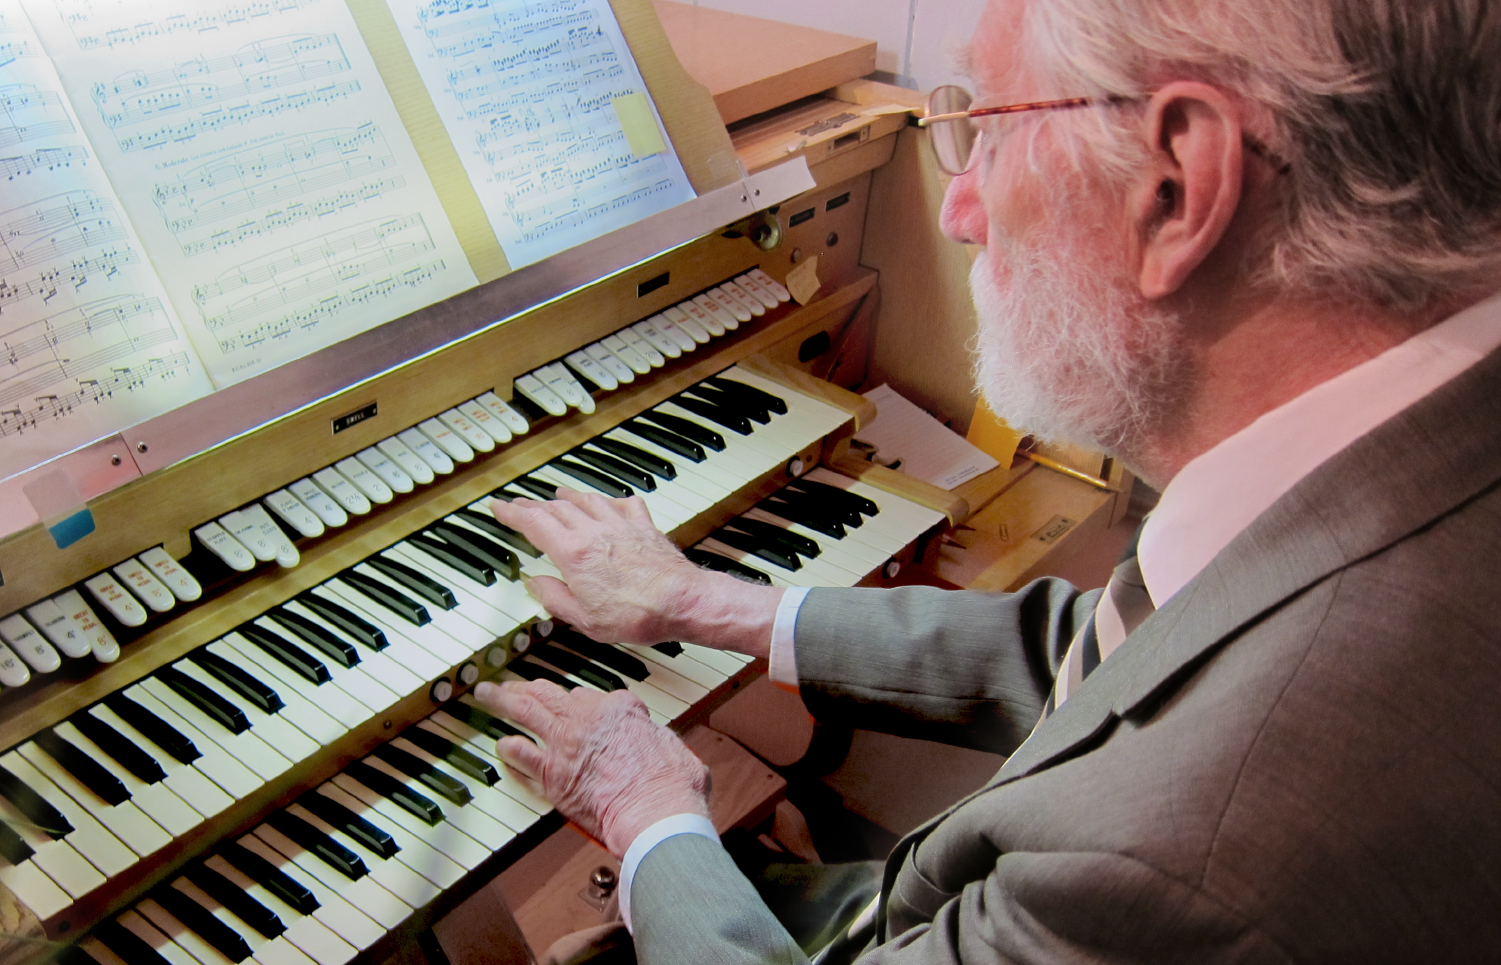 Our Church Organist